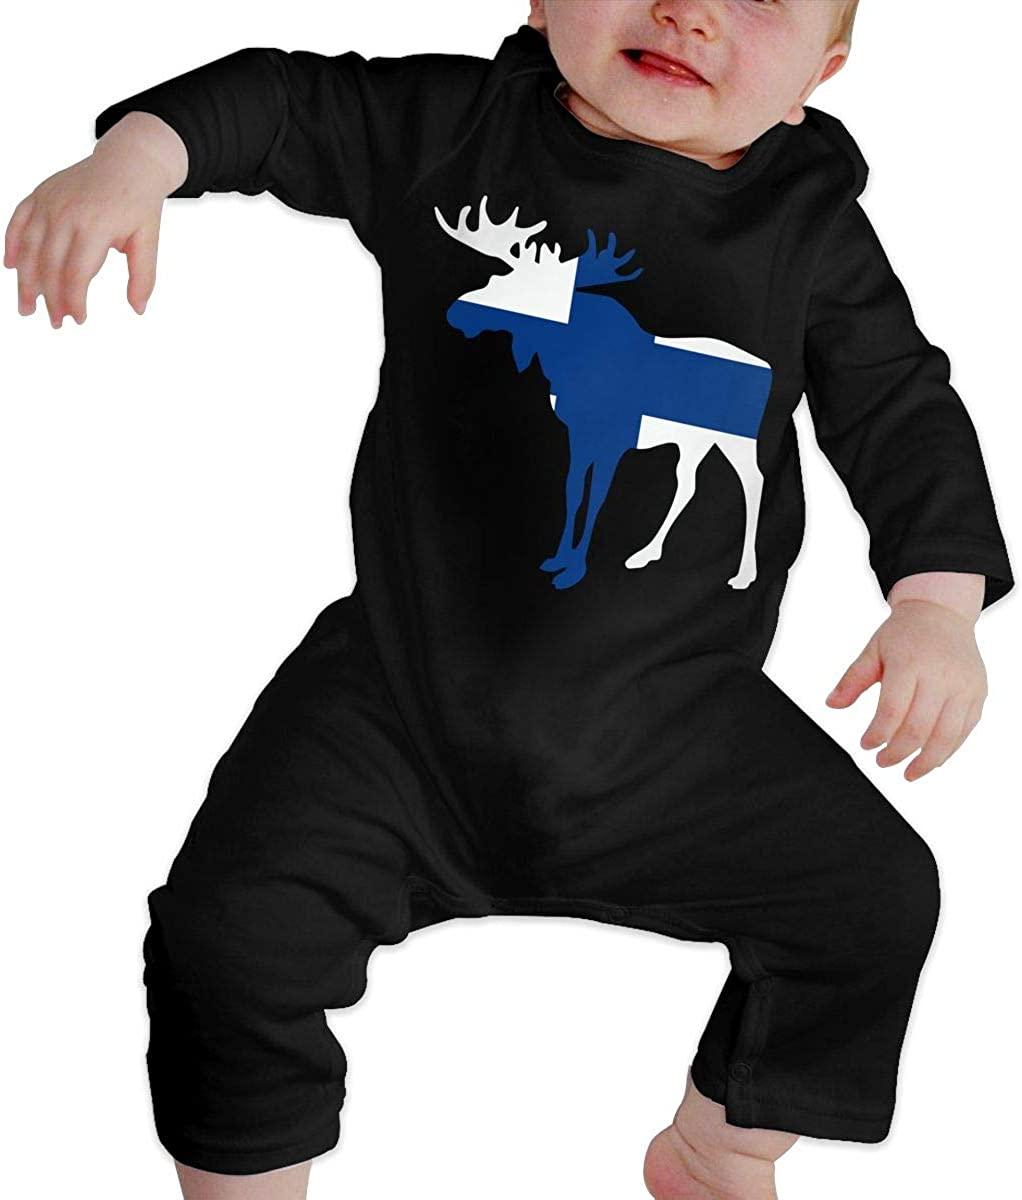 YELTY6F Finland Flag Moose Printed Newborn Infant Baby Boy Girl Bodysuit Long Sleeve Outfits Black